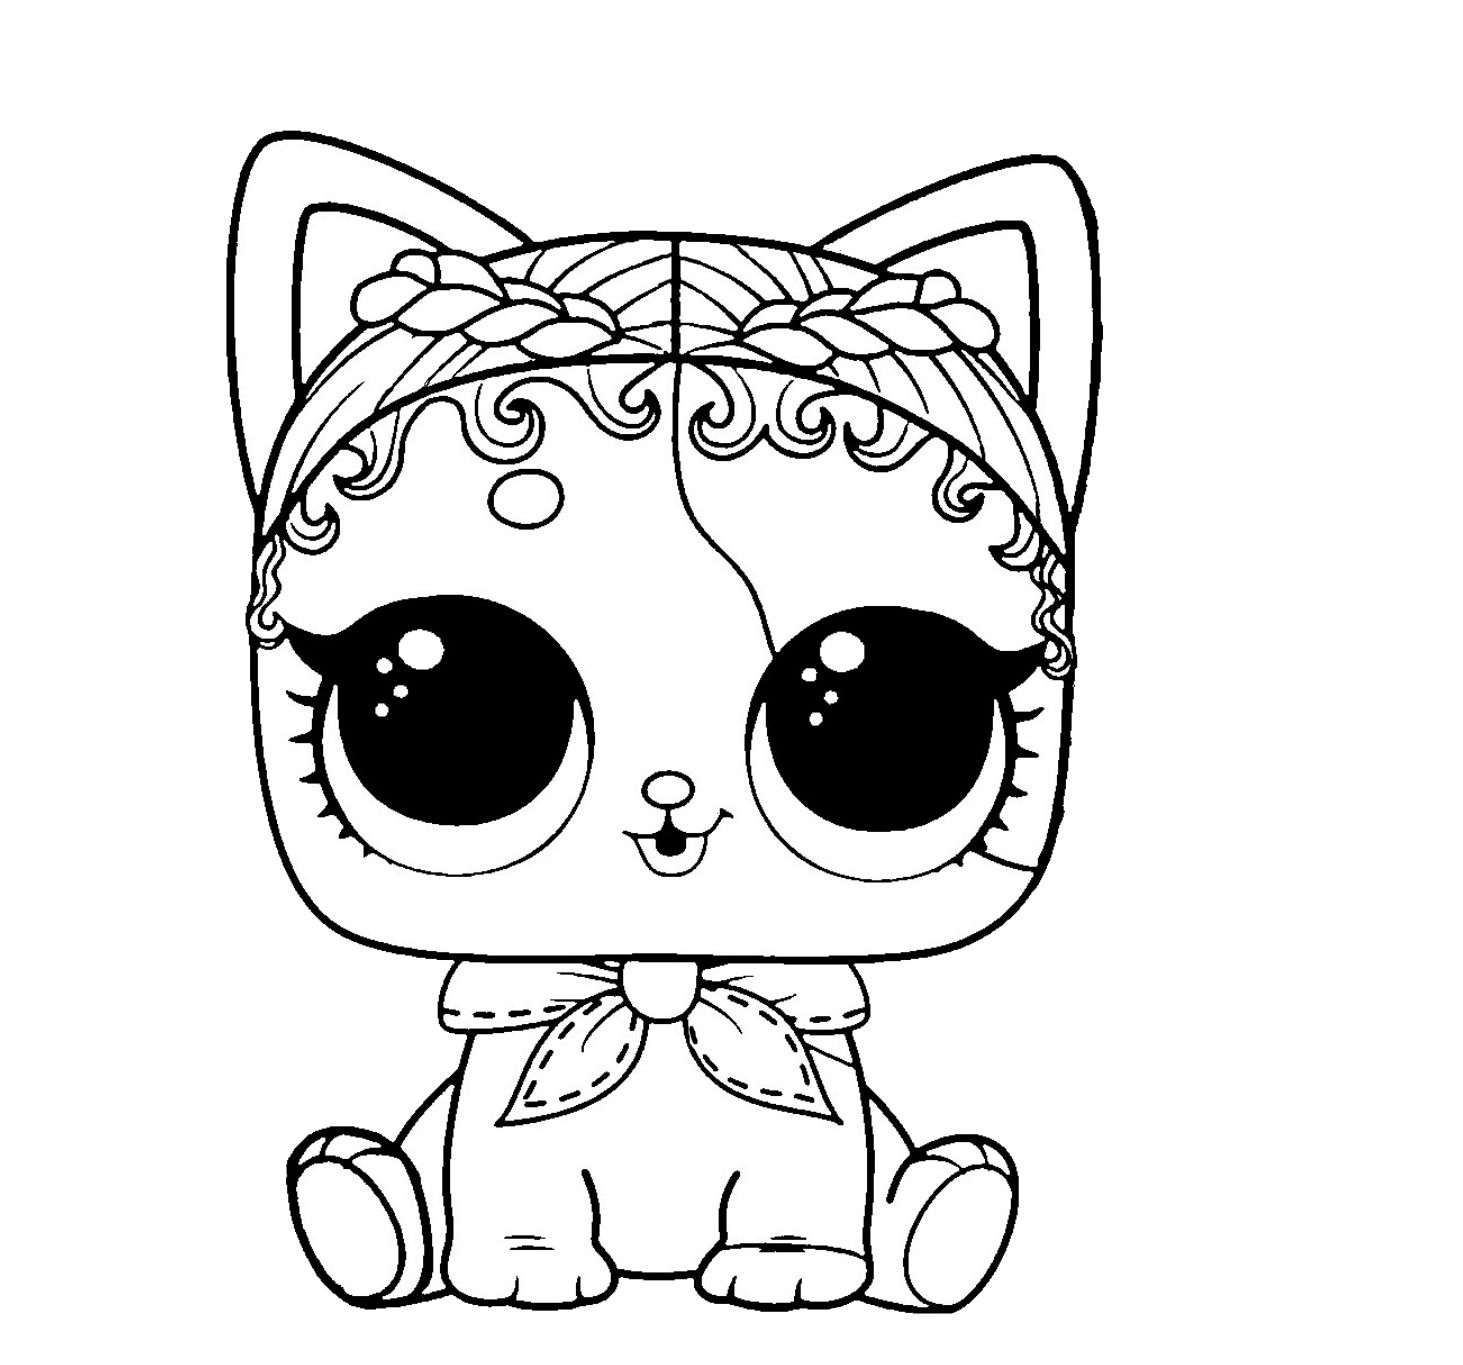 Lol Surprise Pet Coloring Purrrfect Spike In 2020 Cute Coloring Pages Animal Coloring Pages Baby Coloring Pages